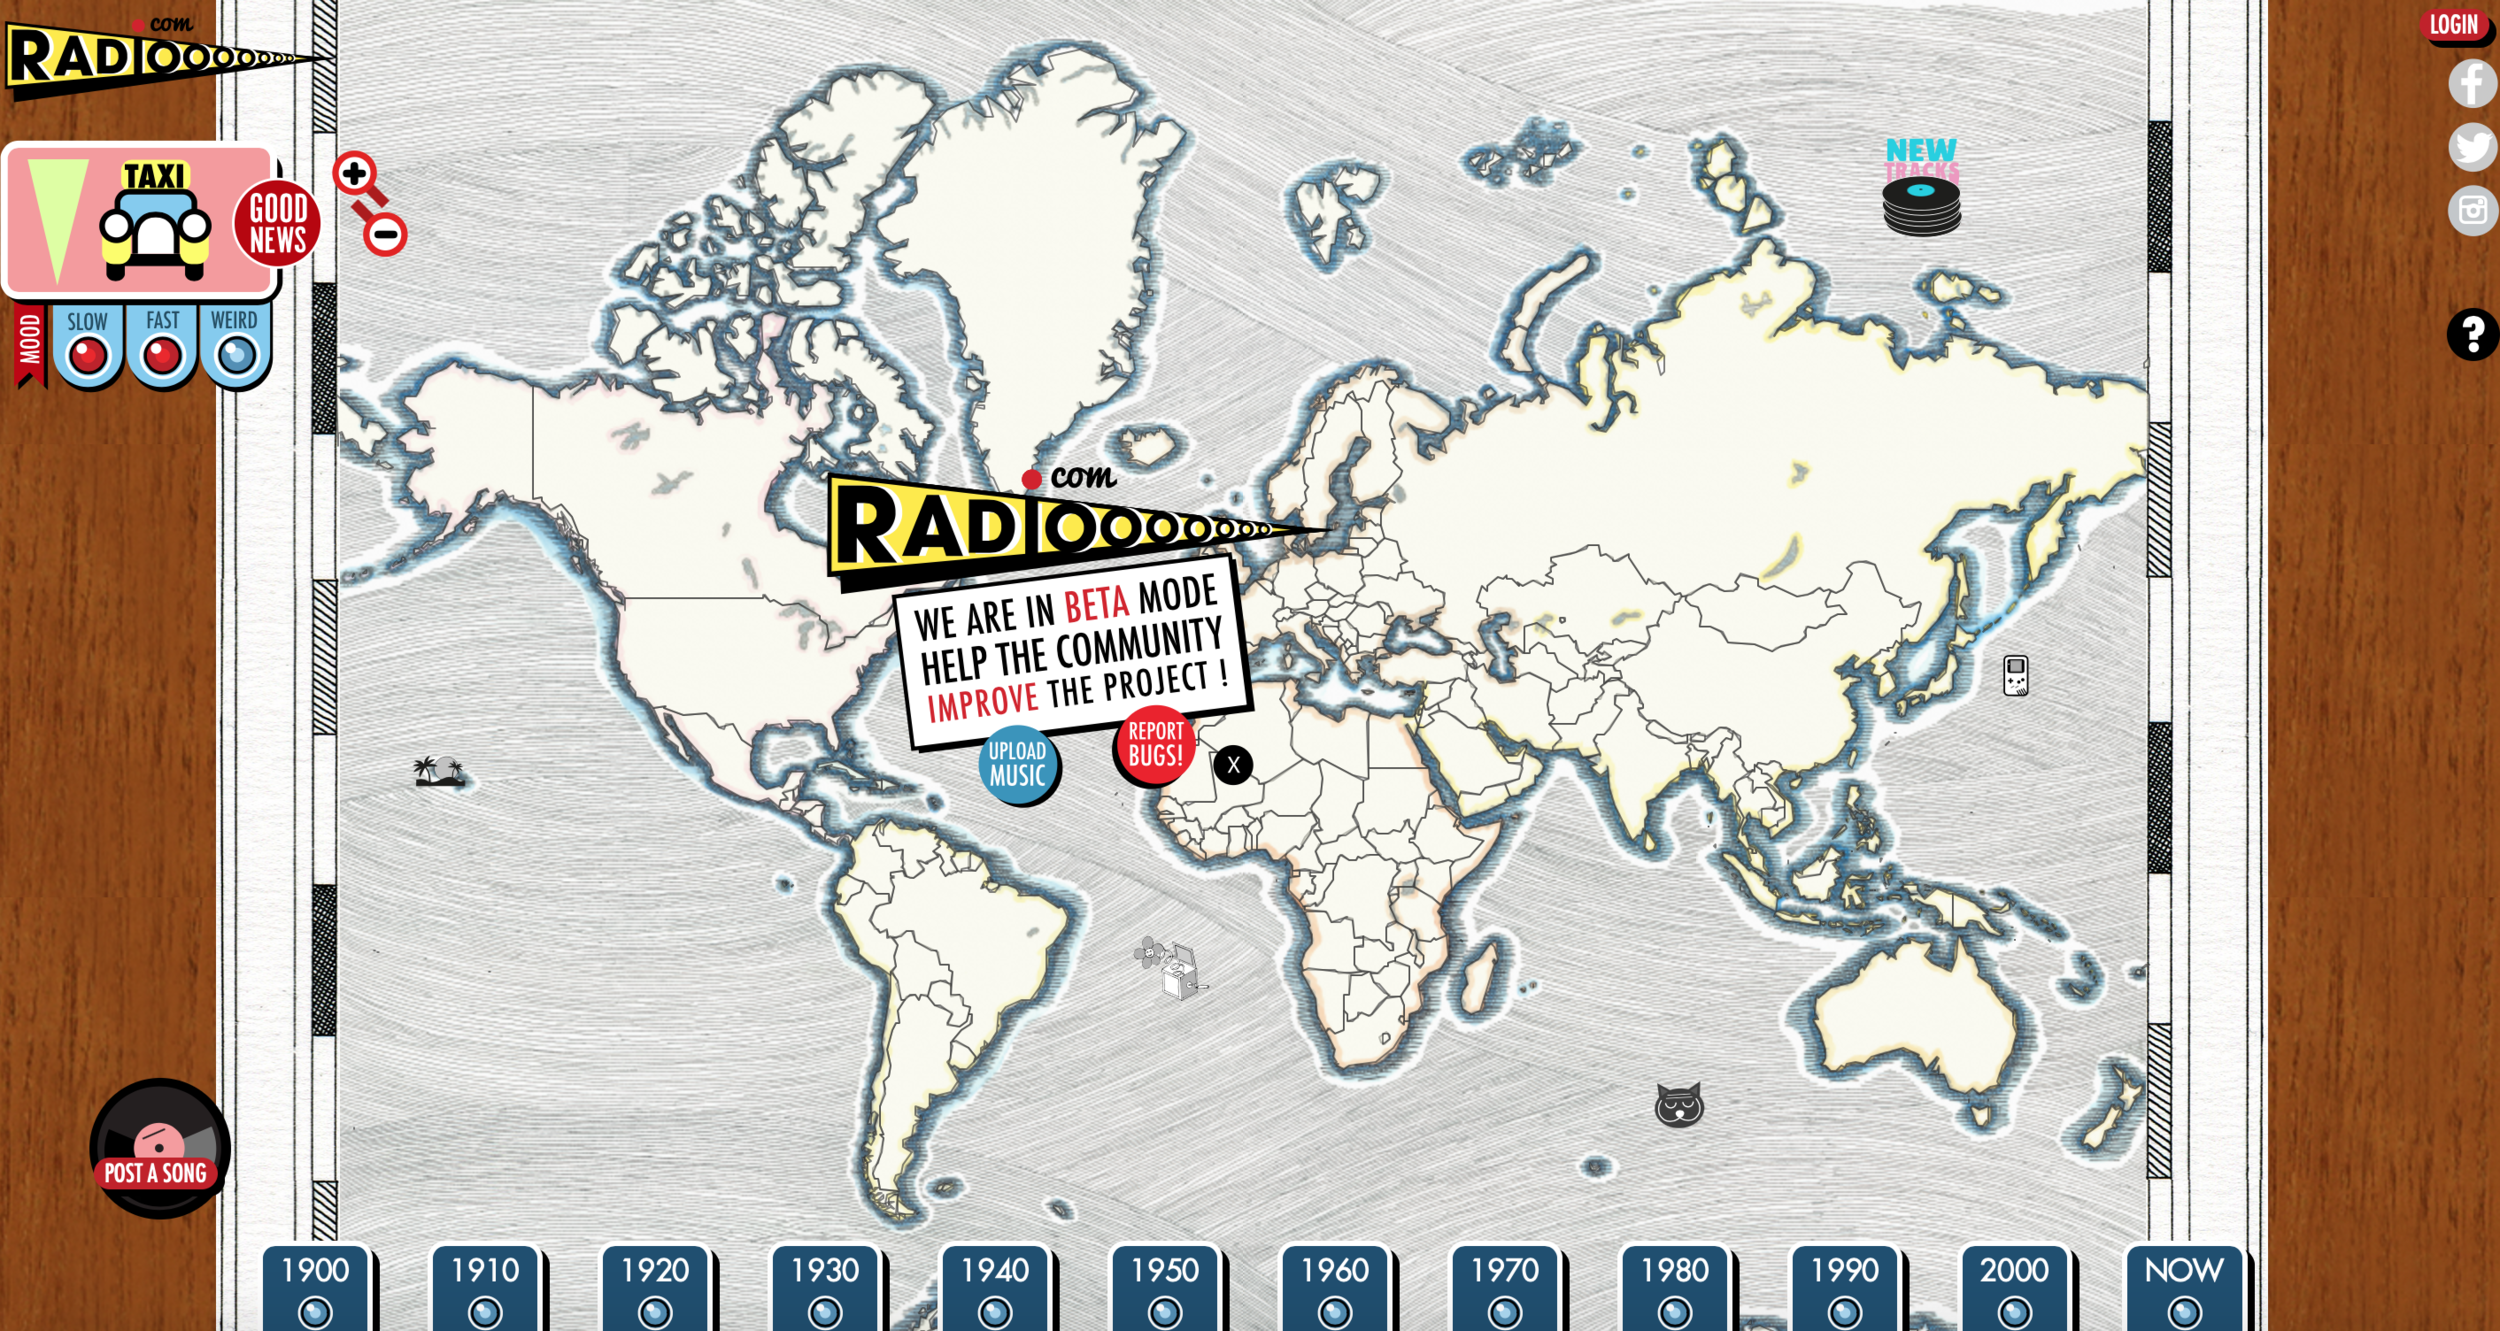 radiooooo-screenshot.png